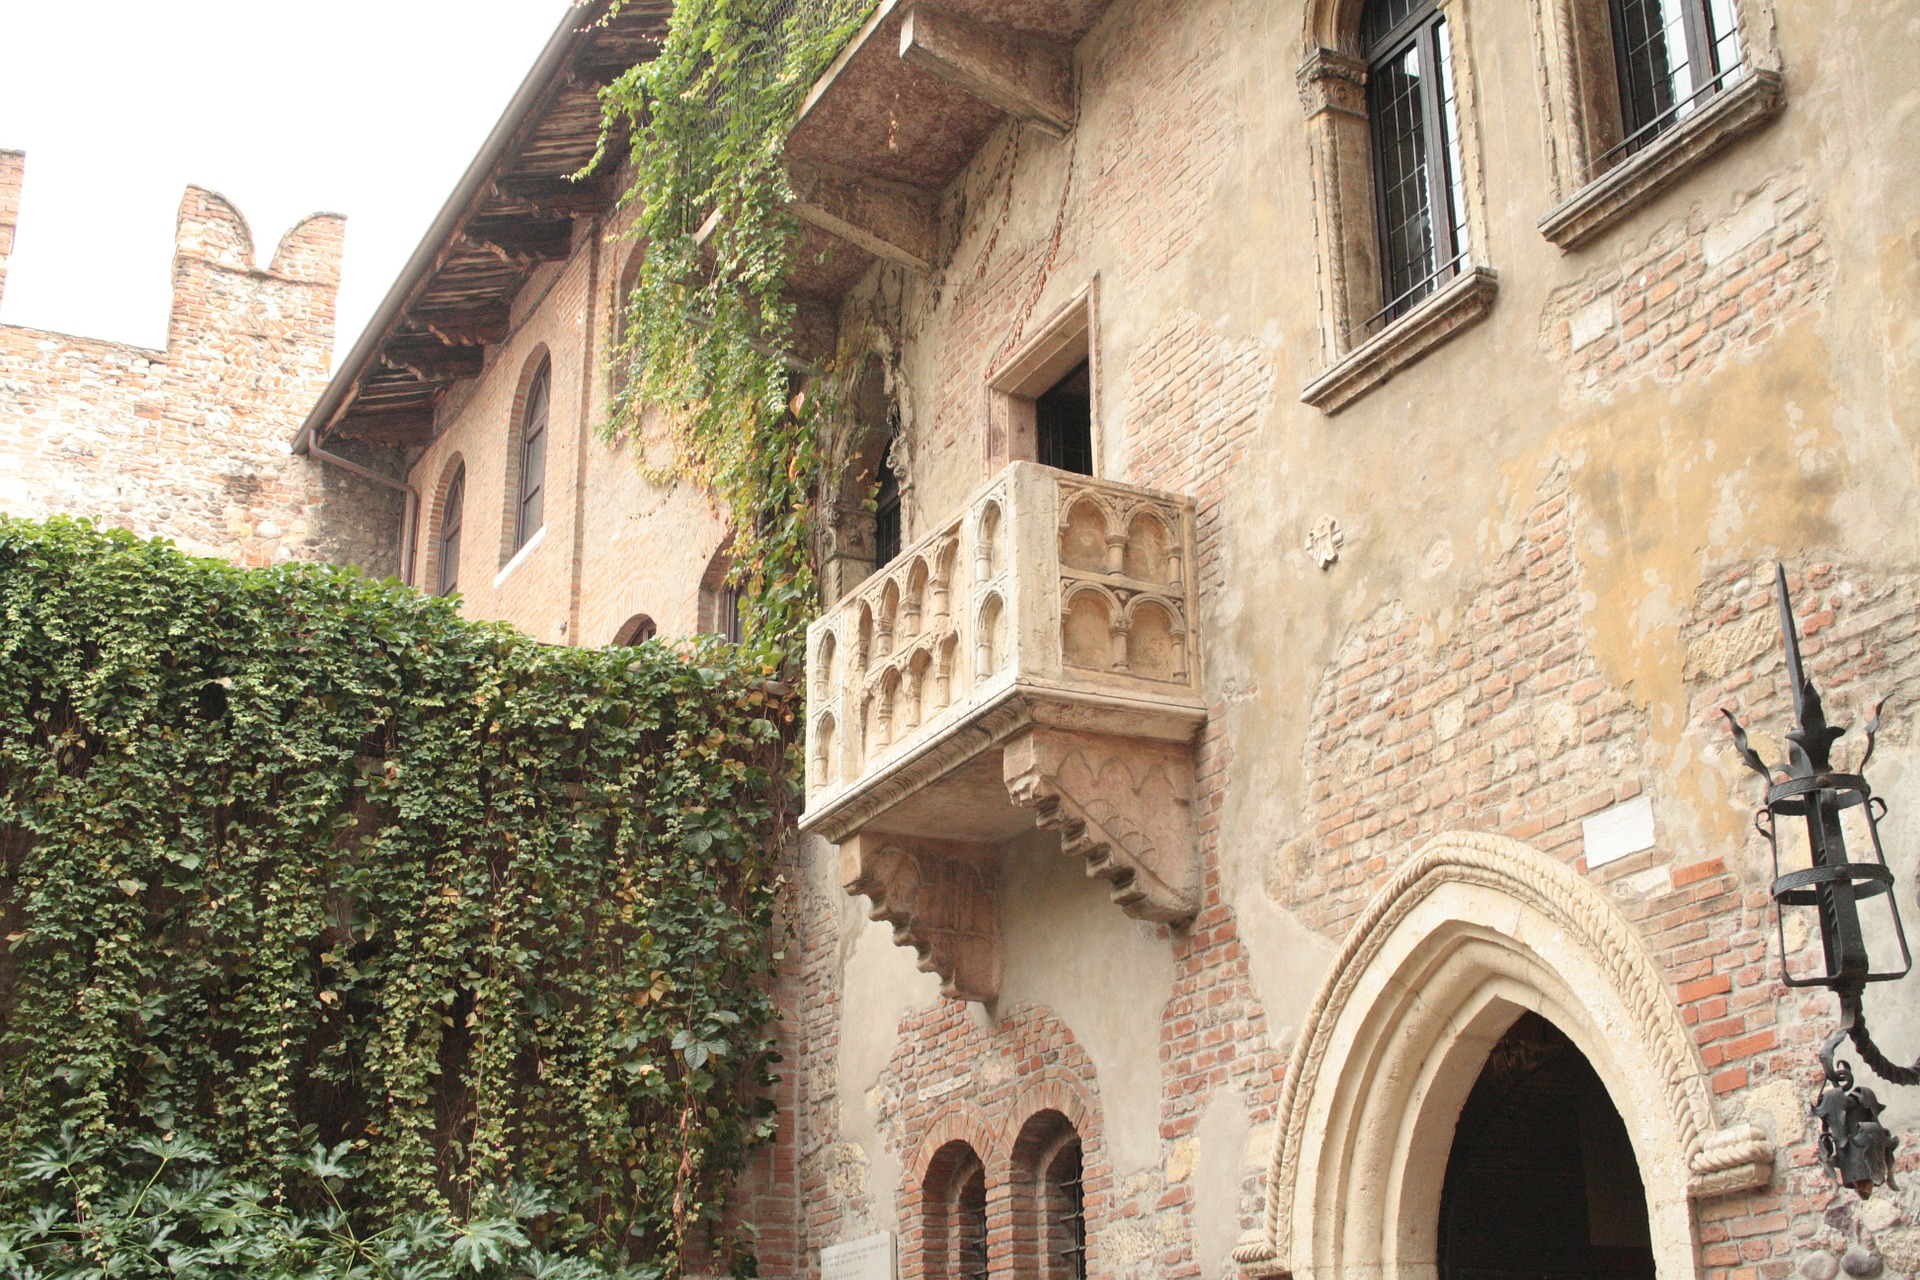 Rome and Juliet's Balcony